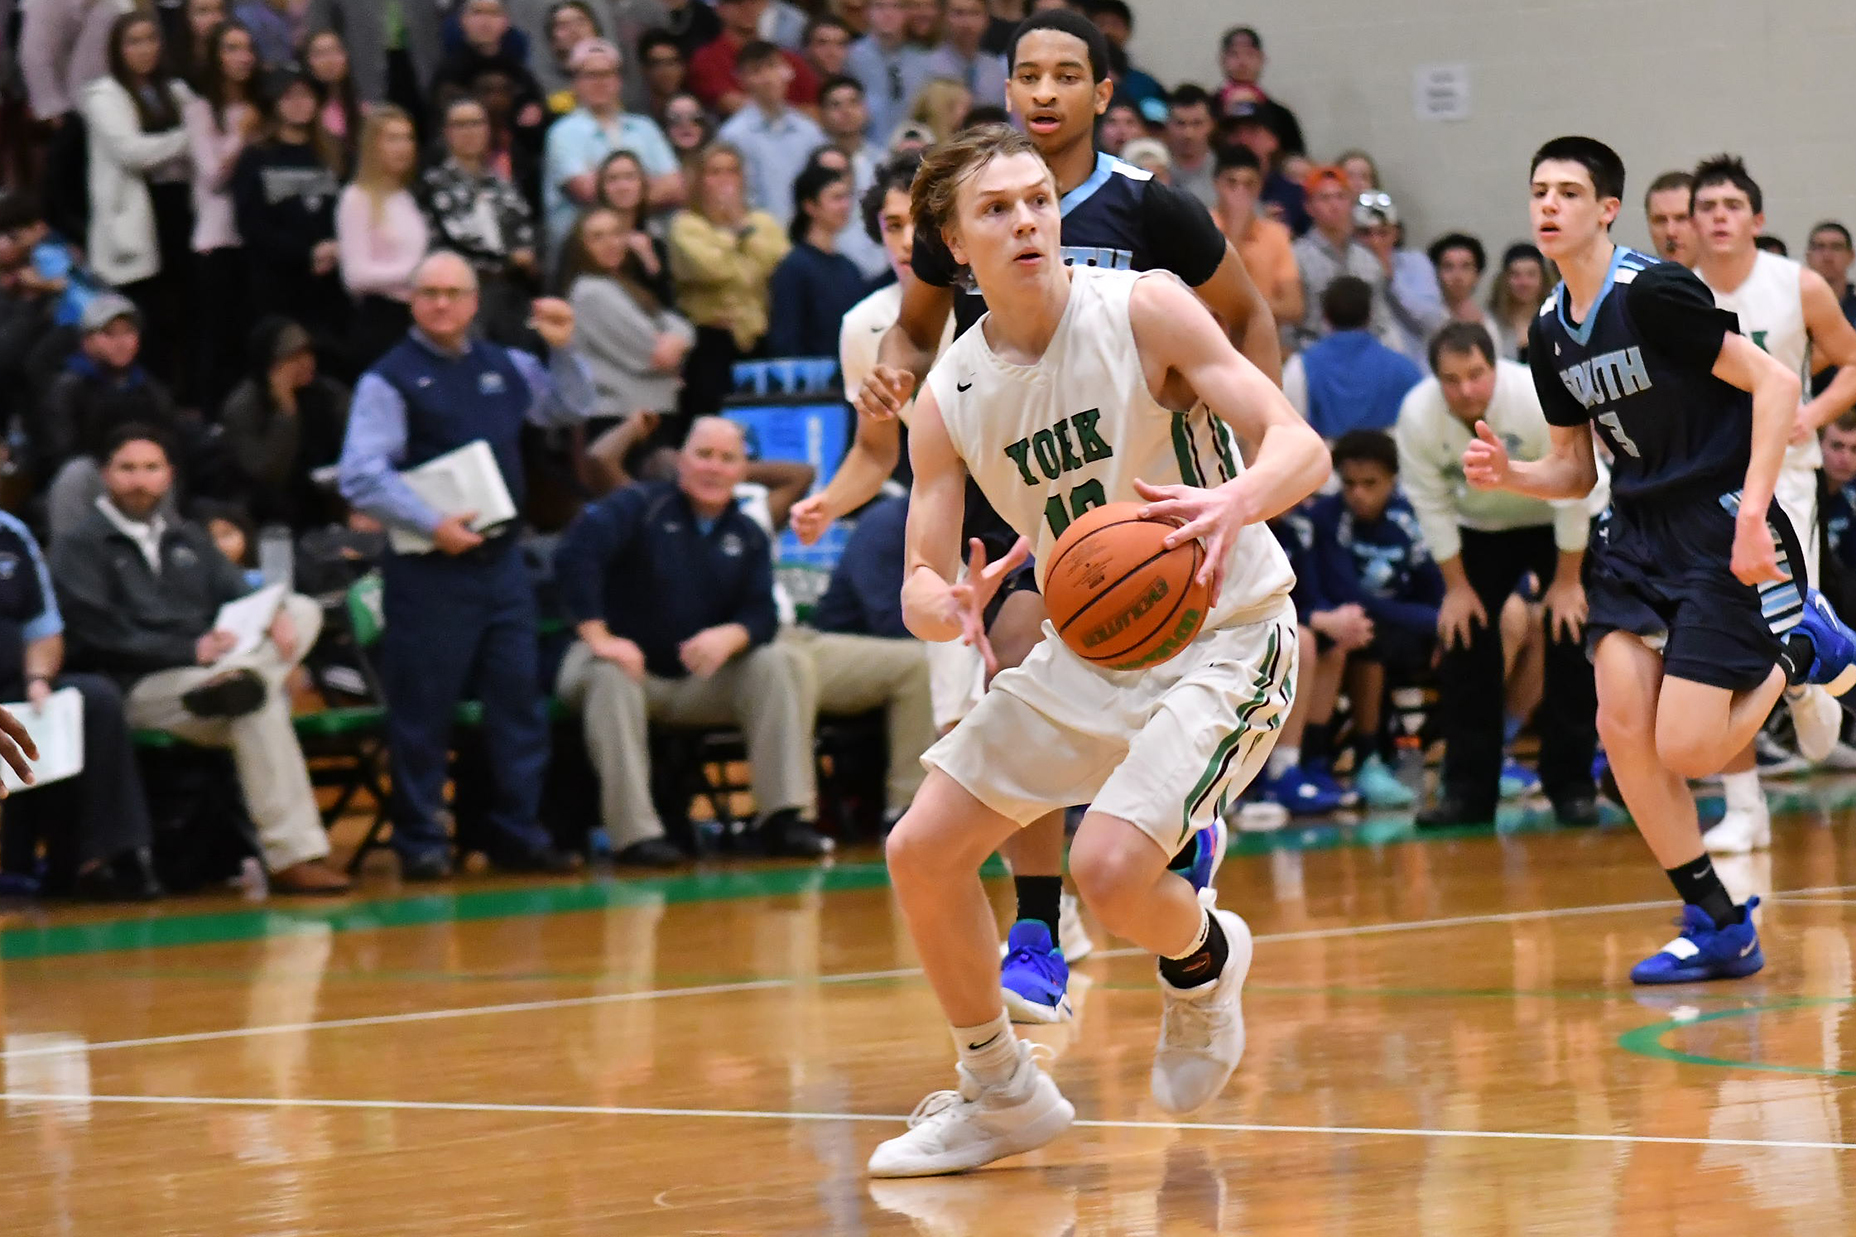 York's Nate Shockey (10) drives down the lane against Downers Grove South.